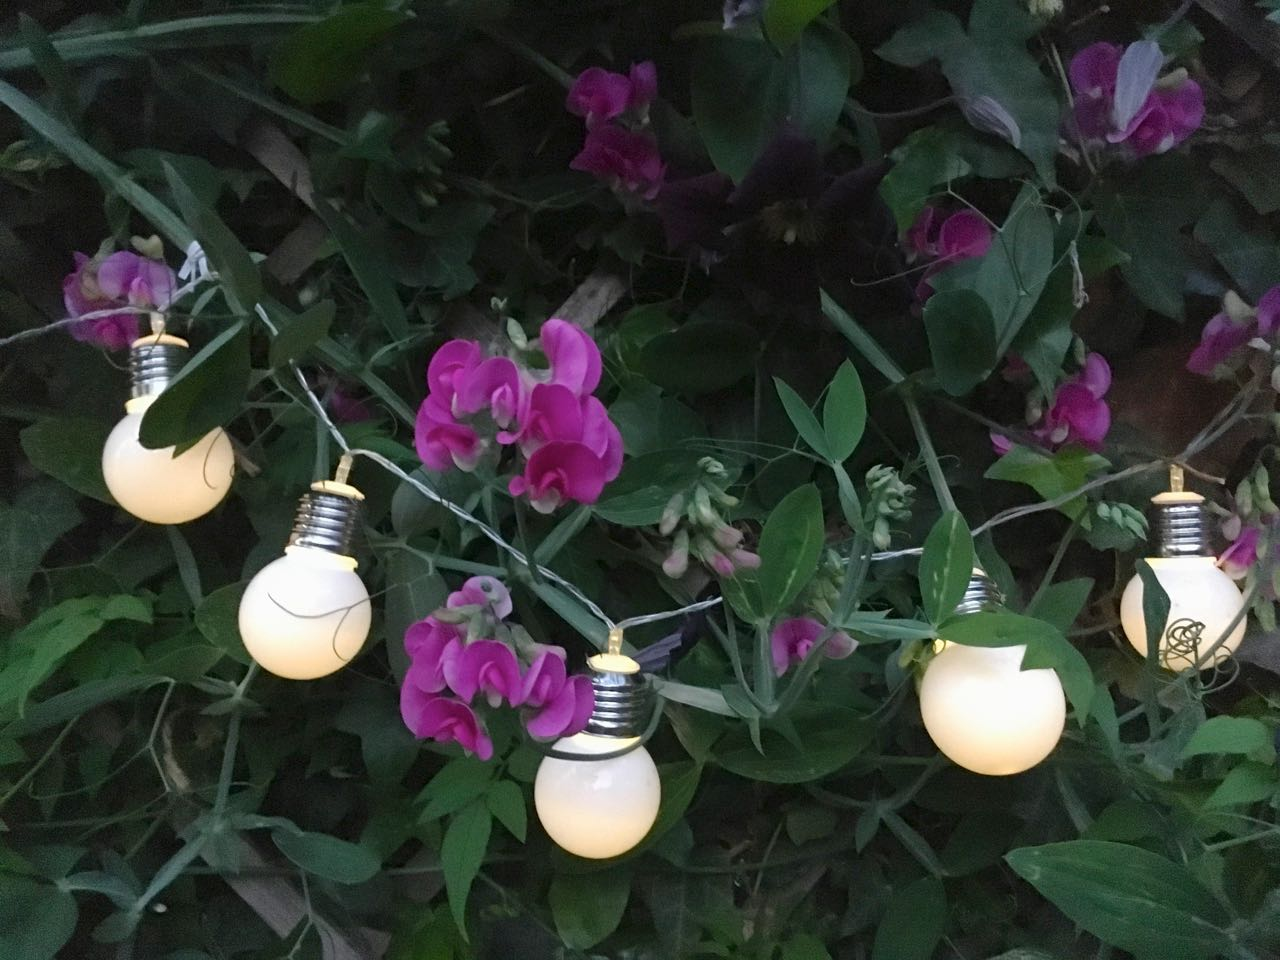 sweet peas and a string of soft glow lights